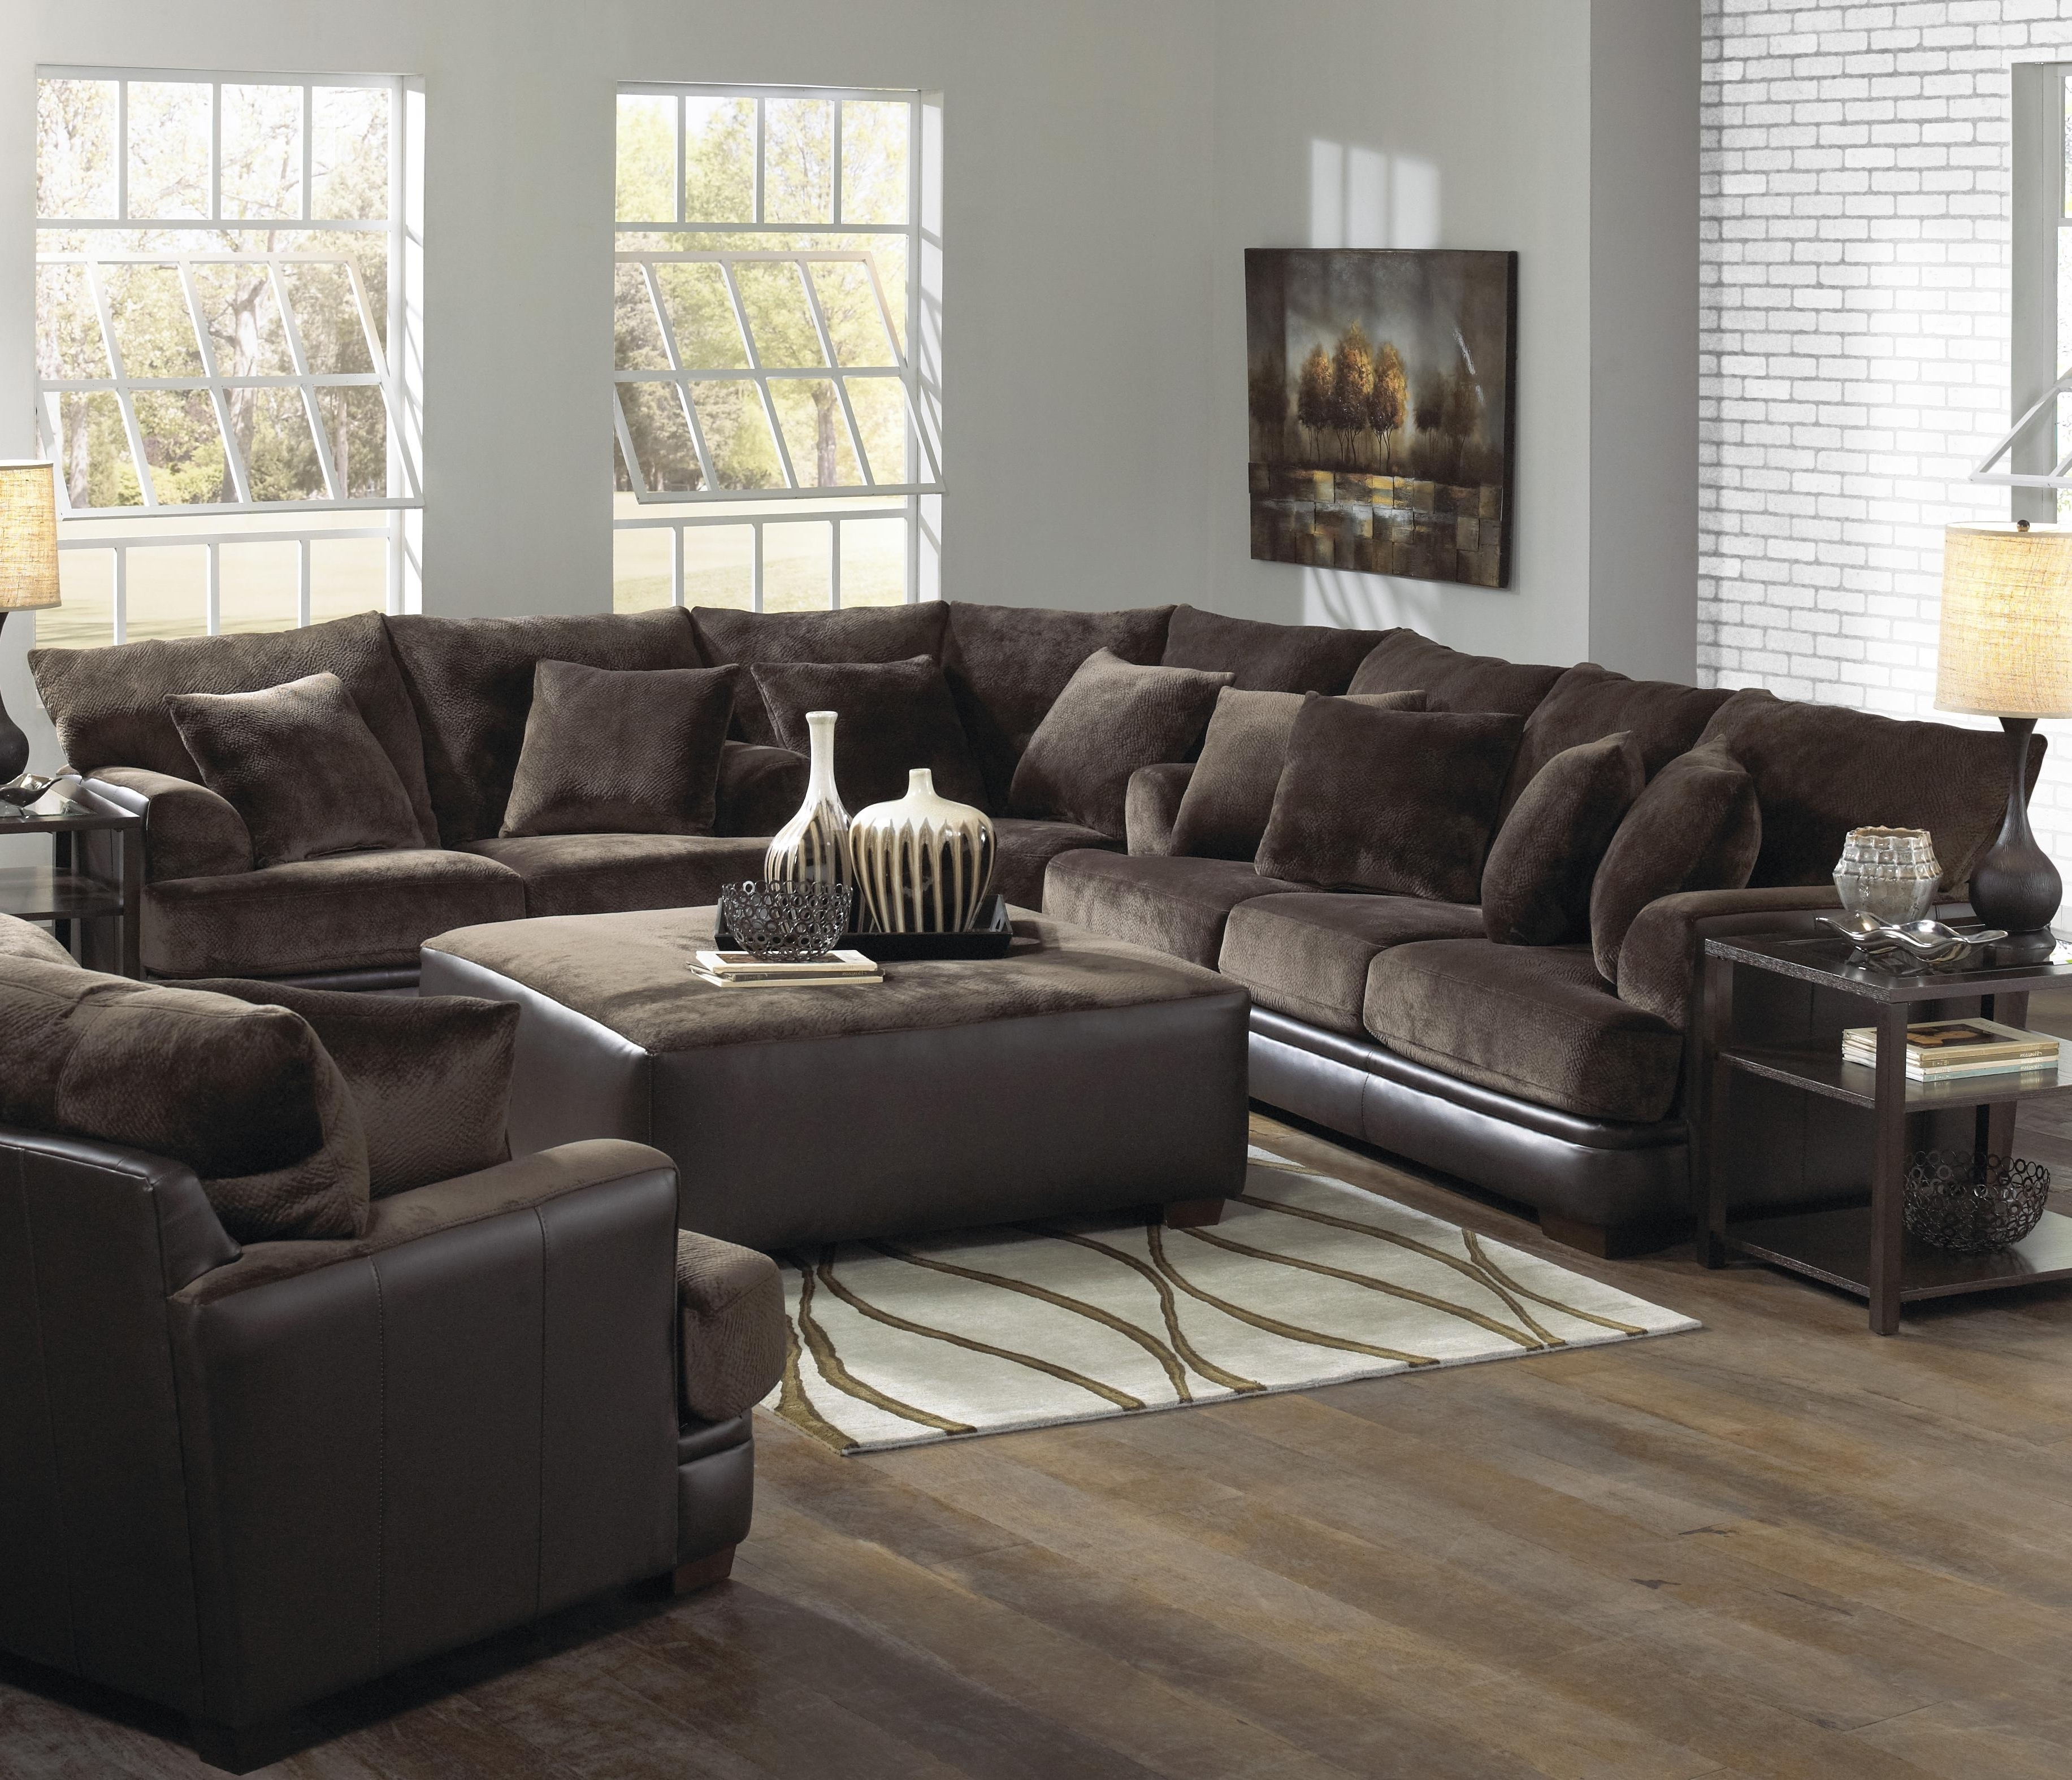 Preferred Extra Large Sectional Leather Couches • Leather Sofa Within Large Sectional Sofas (View 15 of 20)